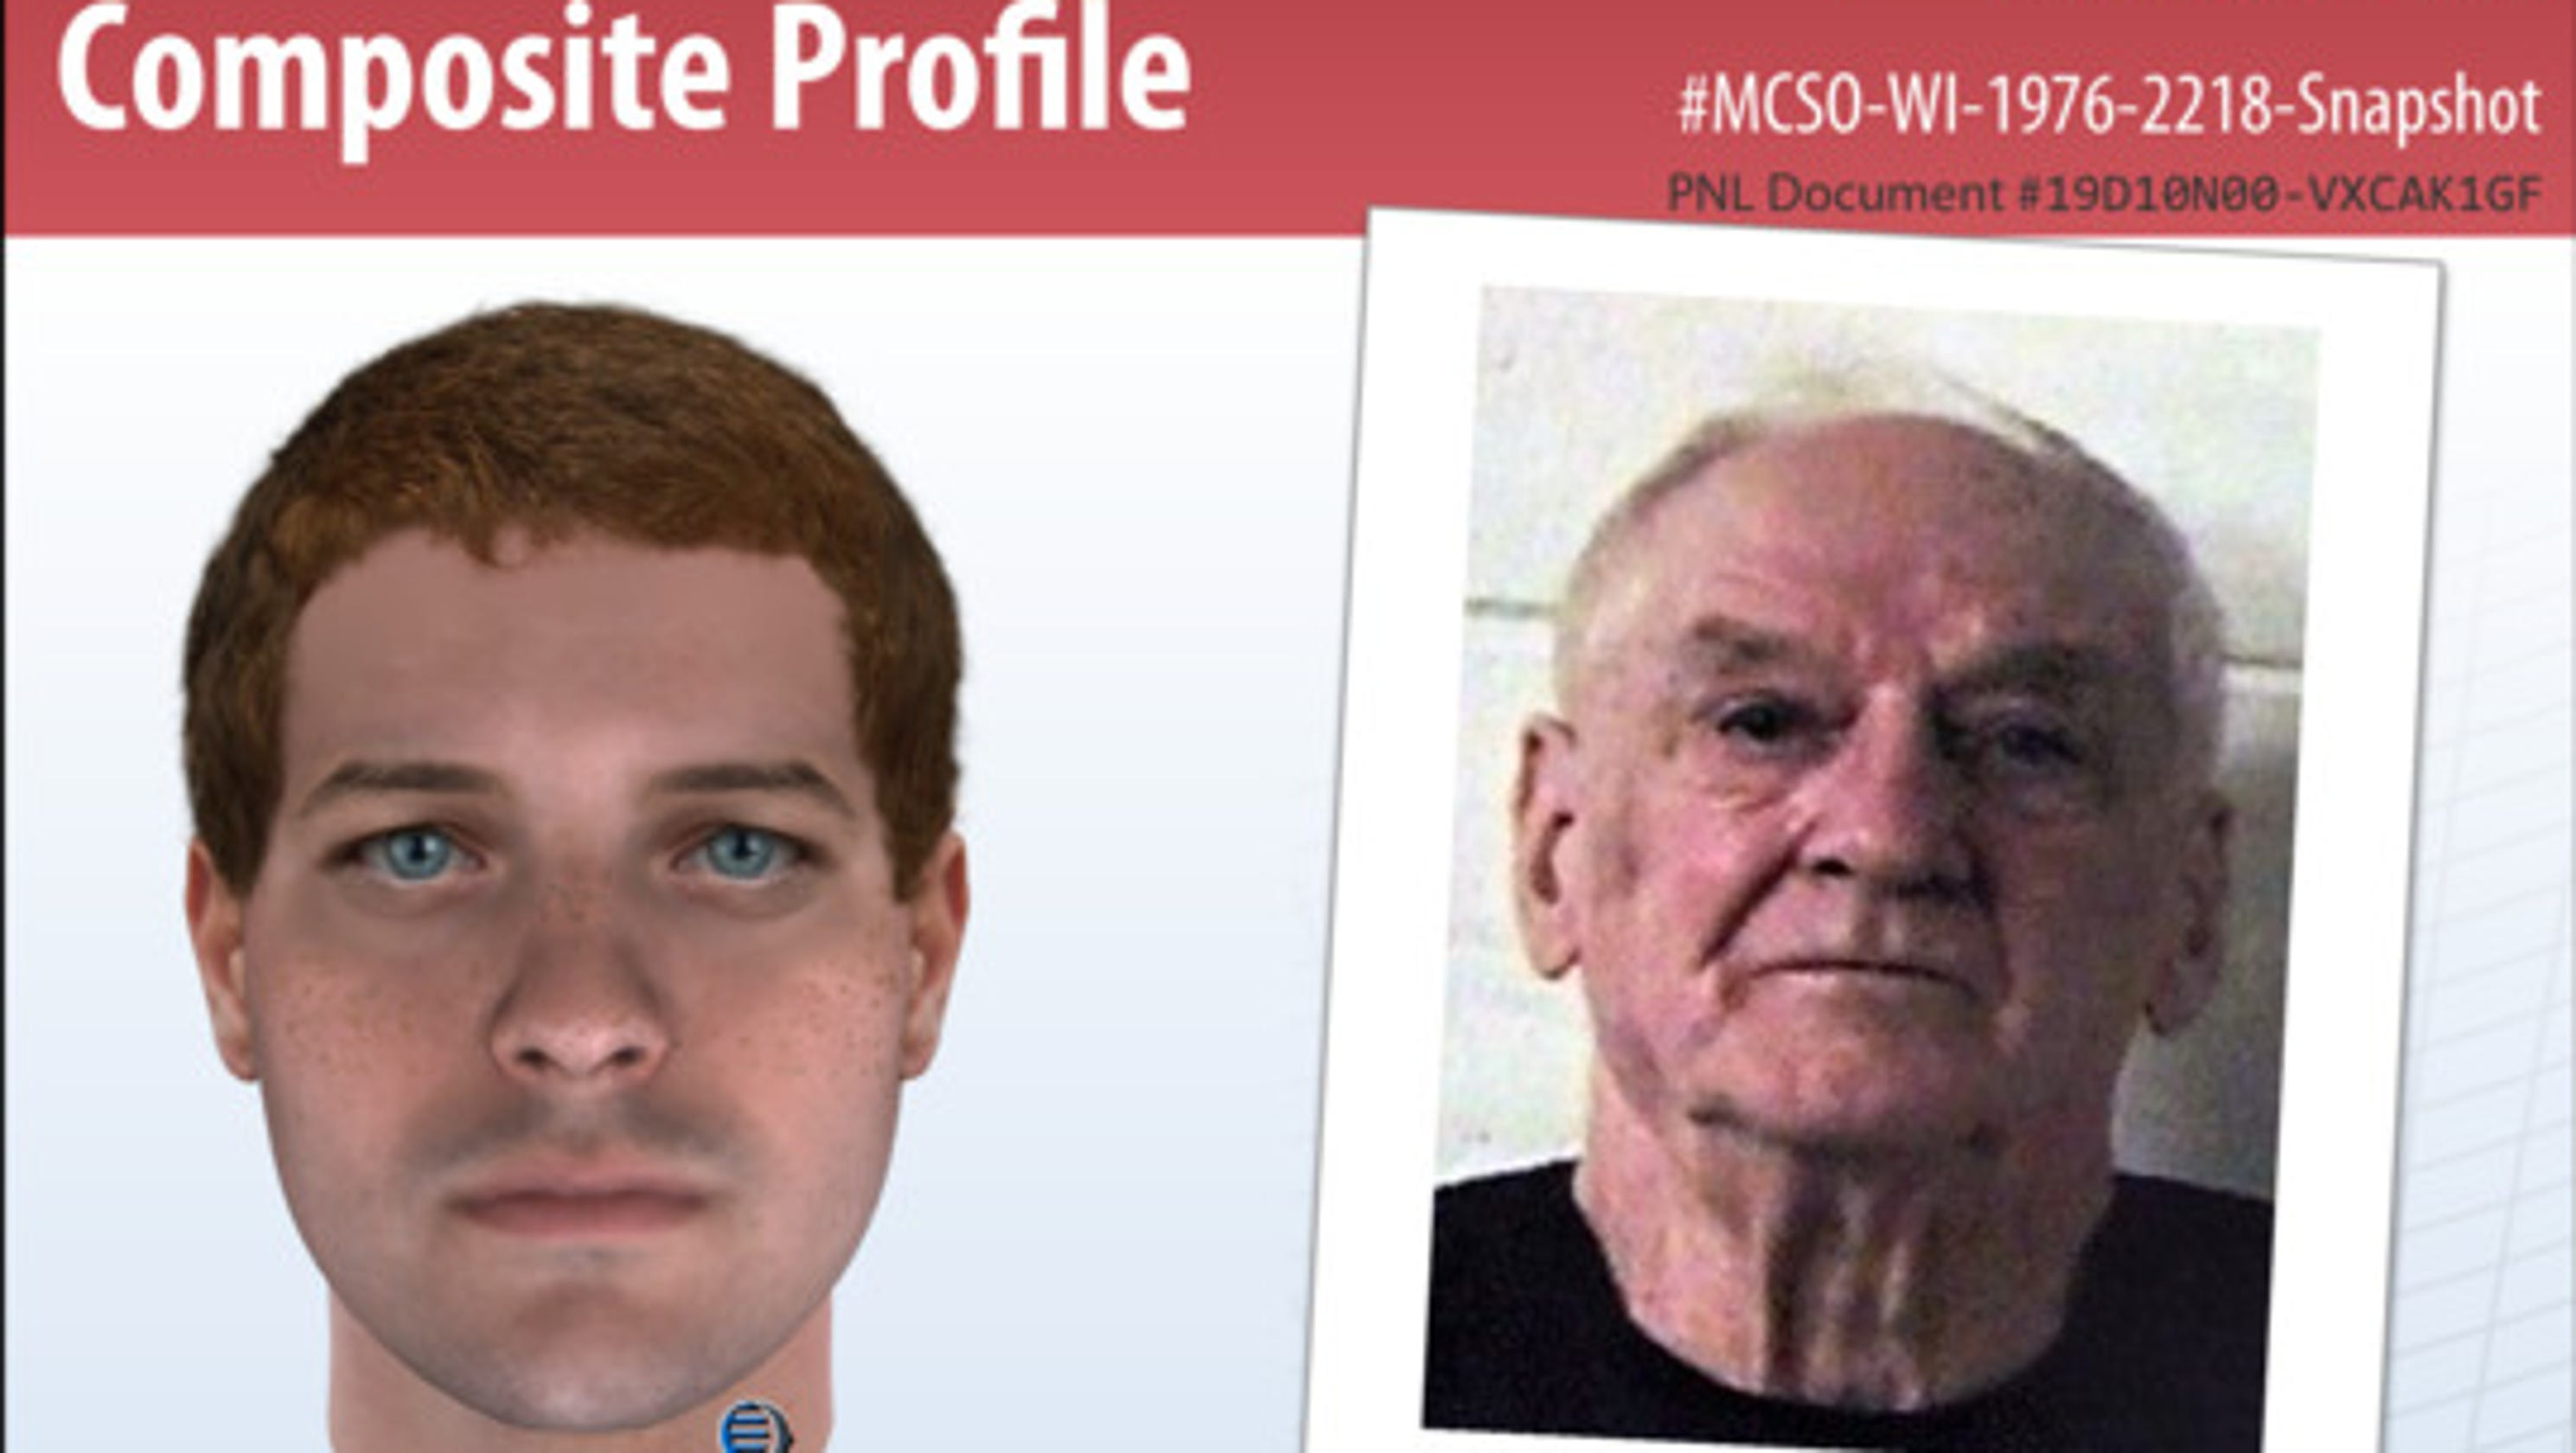 Wisconsin campground killings: Genetic genealogy raises privacy issues